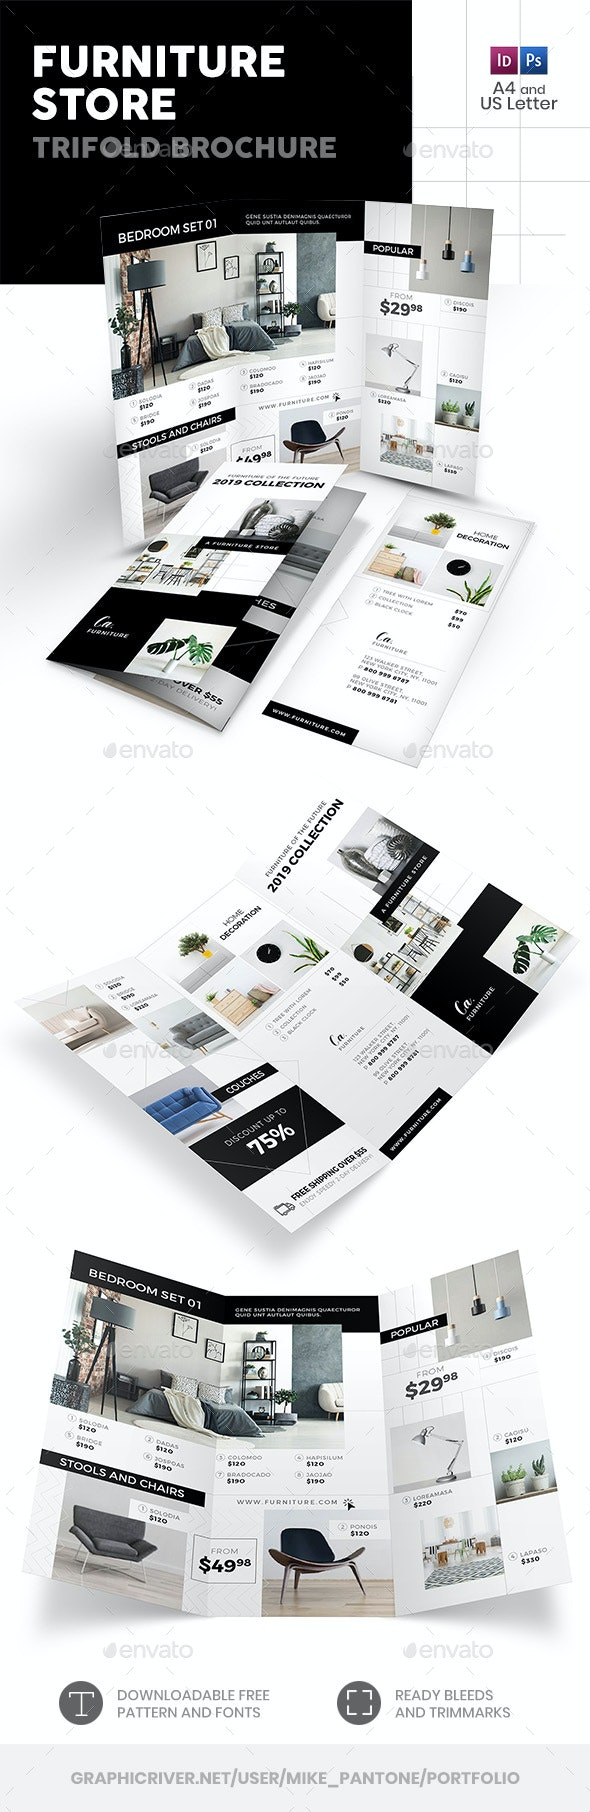 Furniture Store Trifold Brochure 4 - Informational Brochures